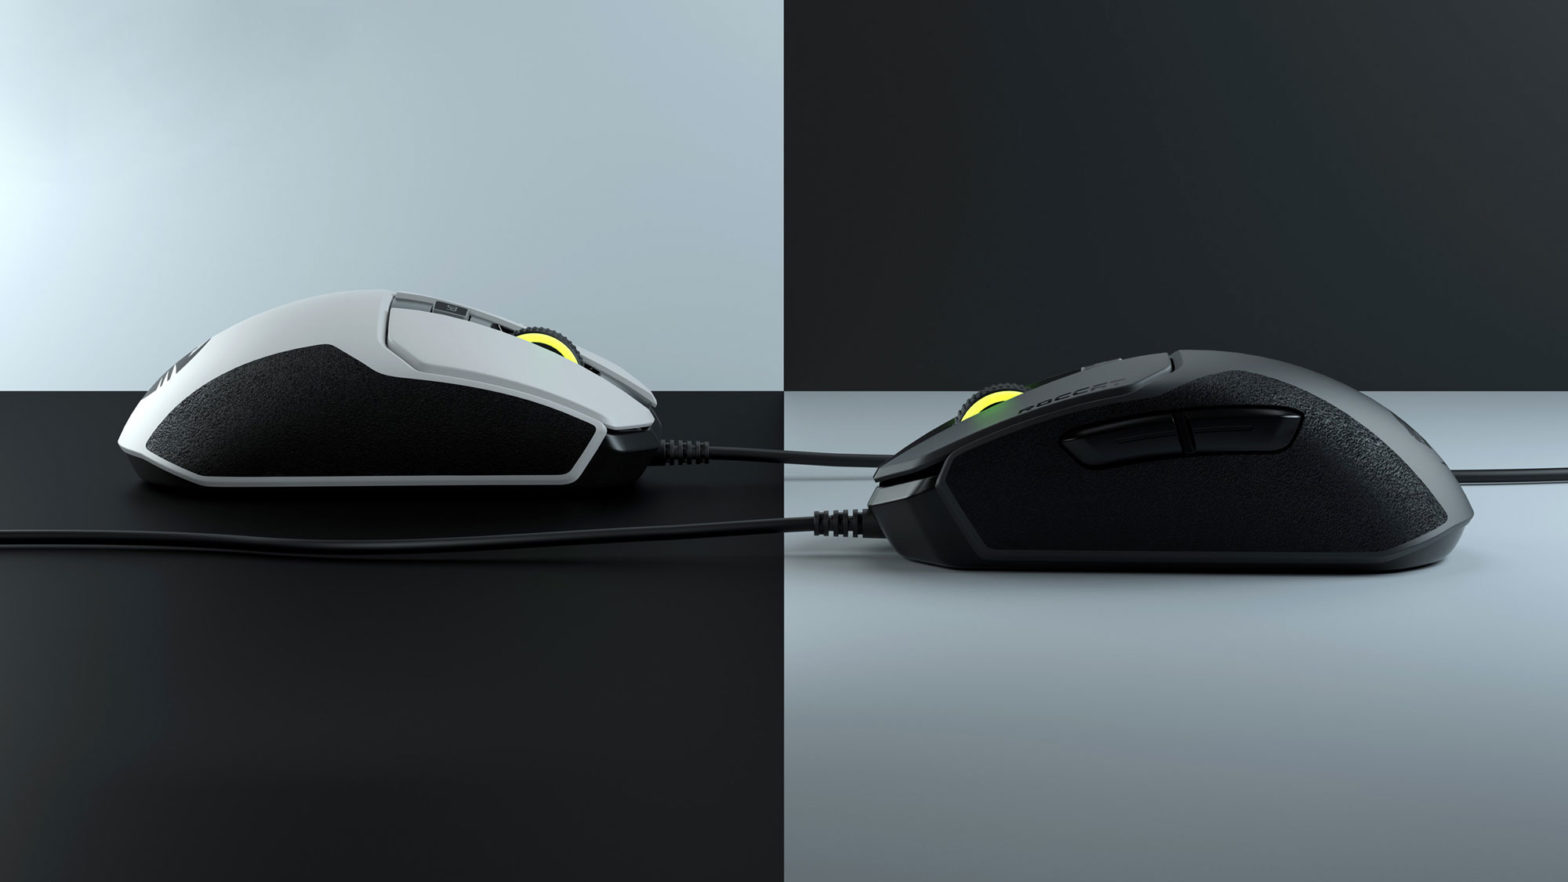 ROCCAT Kain Series Mice and Vulcan Keyboards